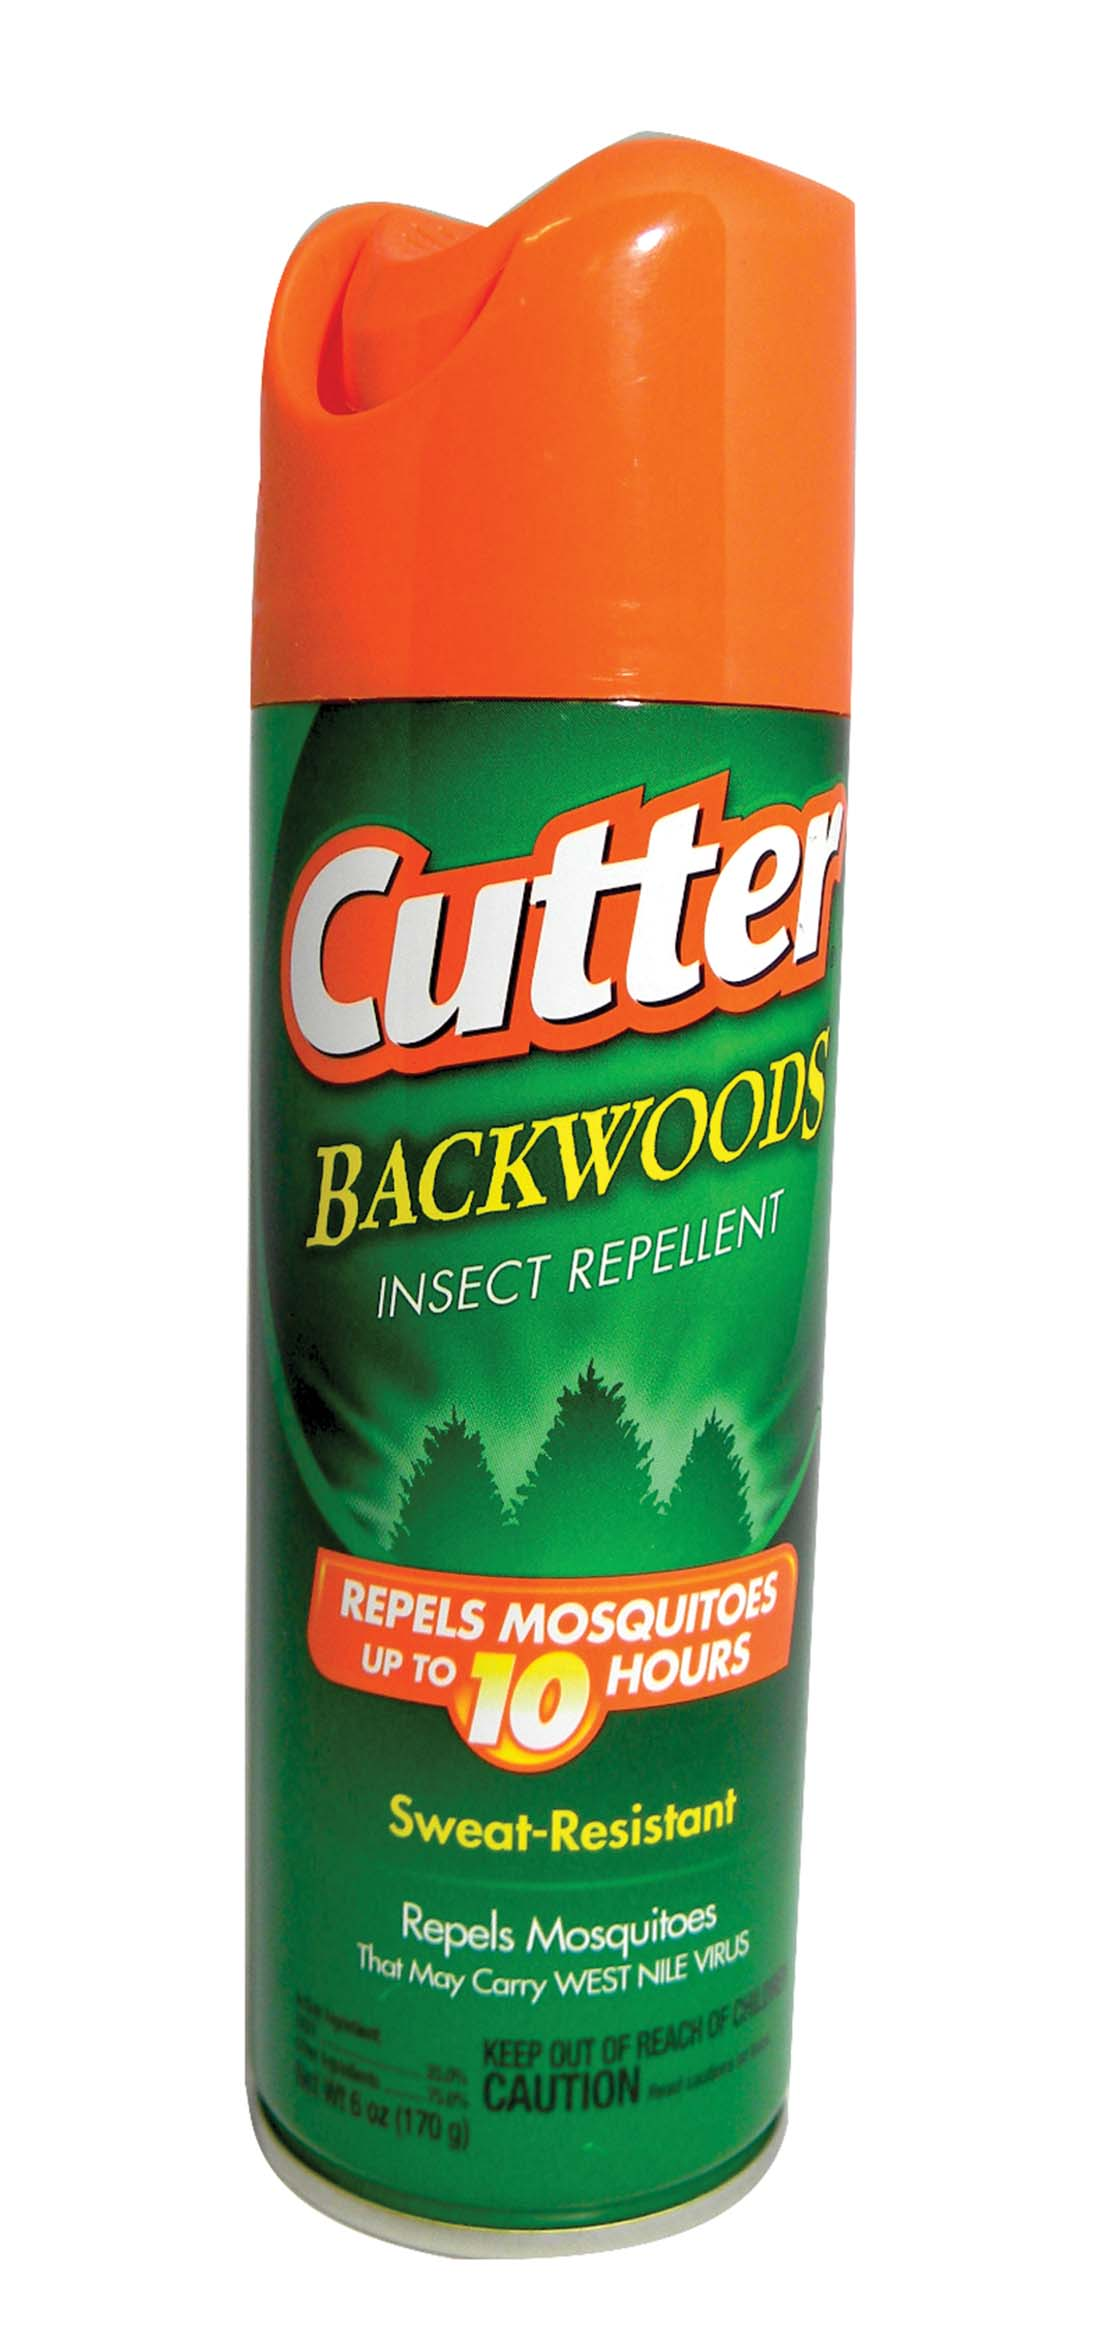 View CUTTER INSECT REPELLENT 6 OZ BACKWOODS AEROSOL SPRAY SWEAT RESISTANT ** MUST BE BROKEN**